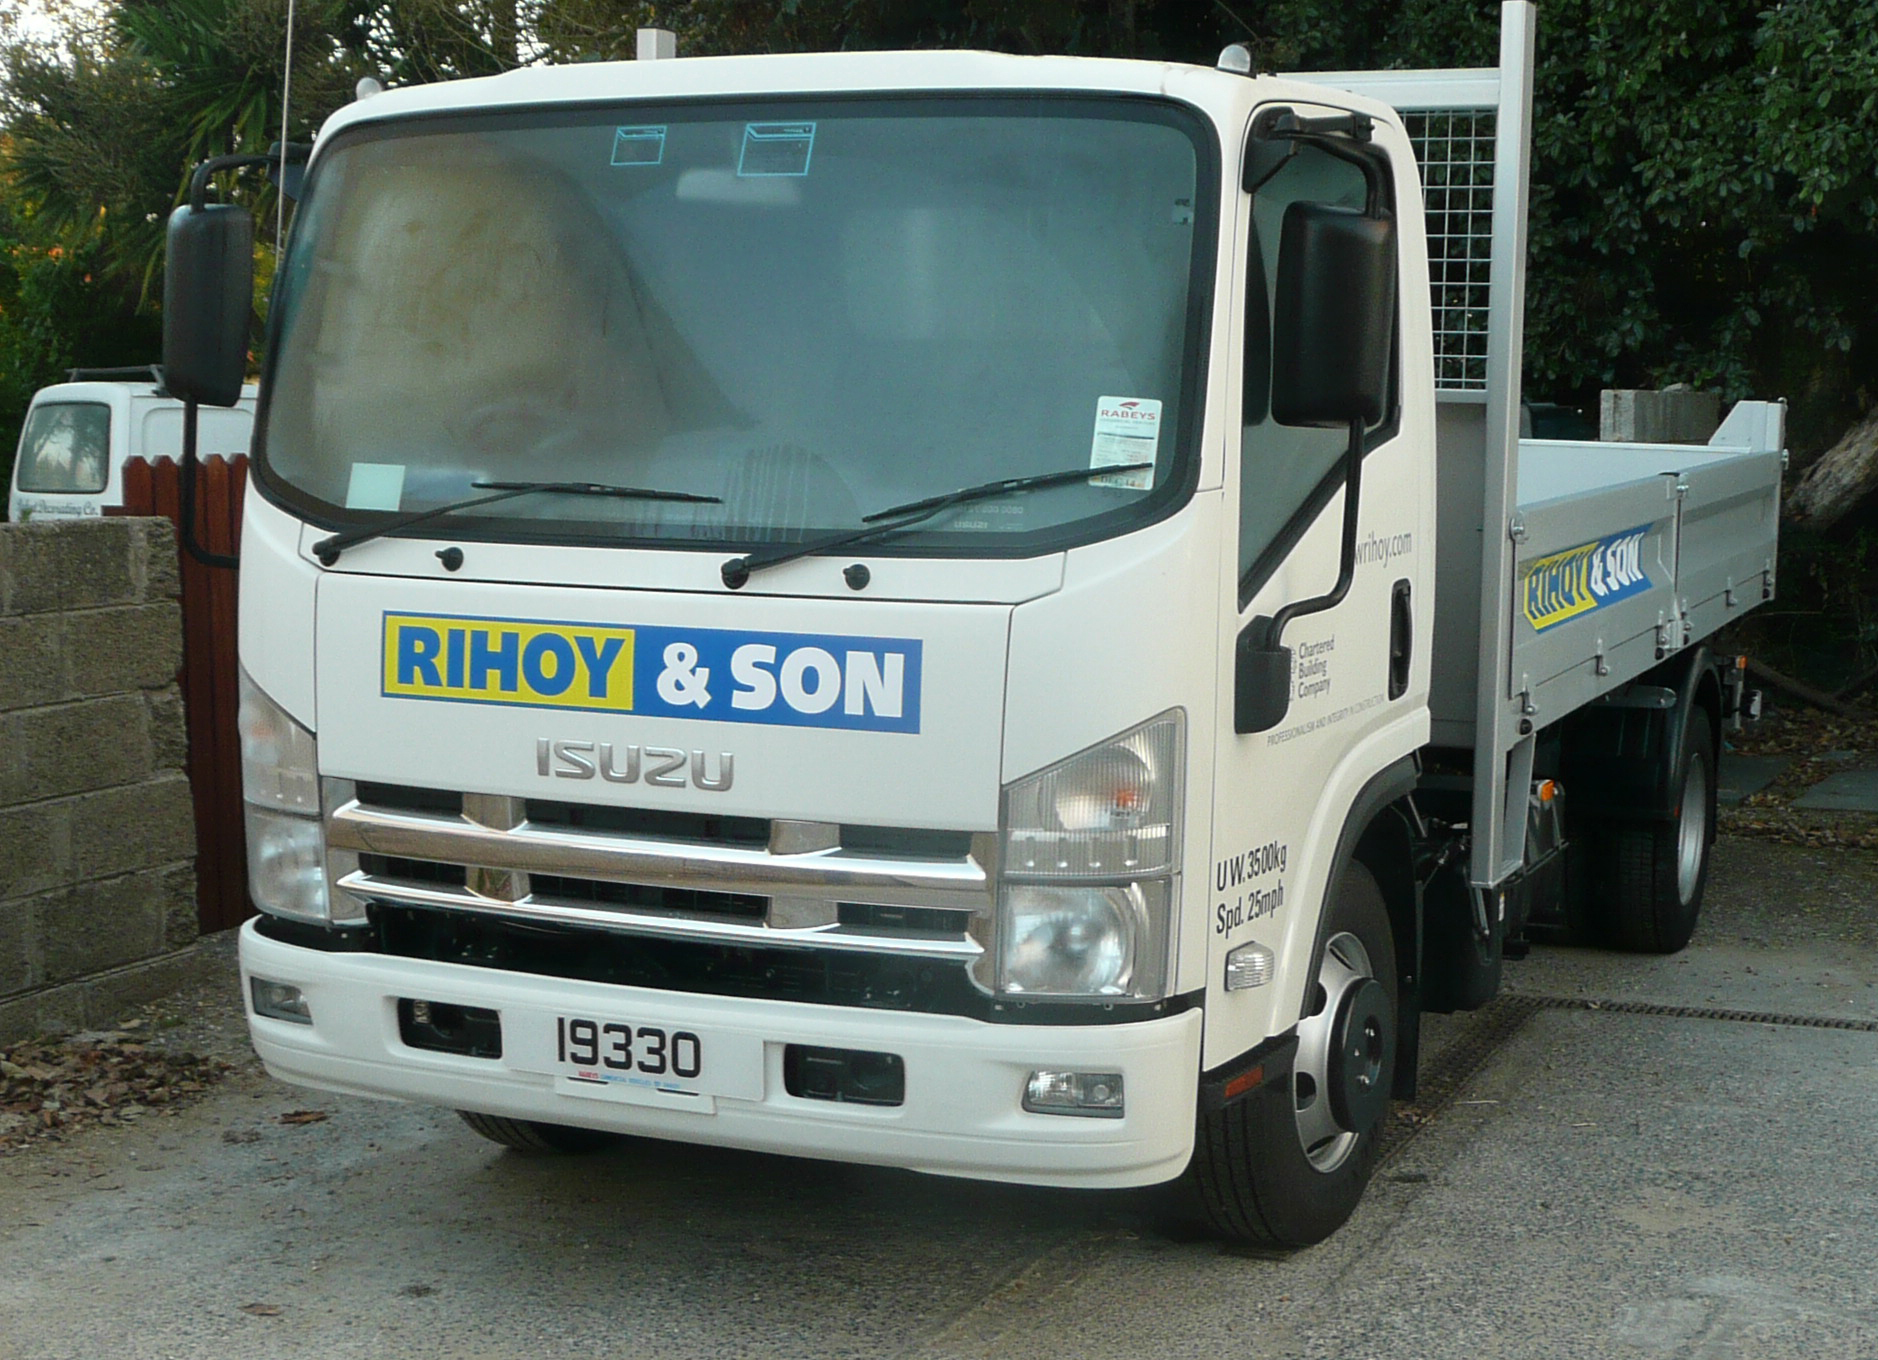 A new set of wheels for Rihoy & Son